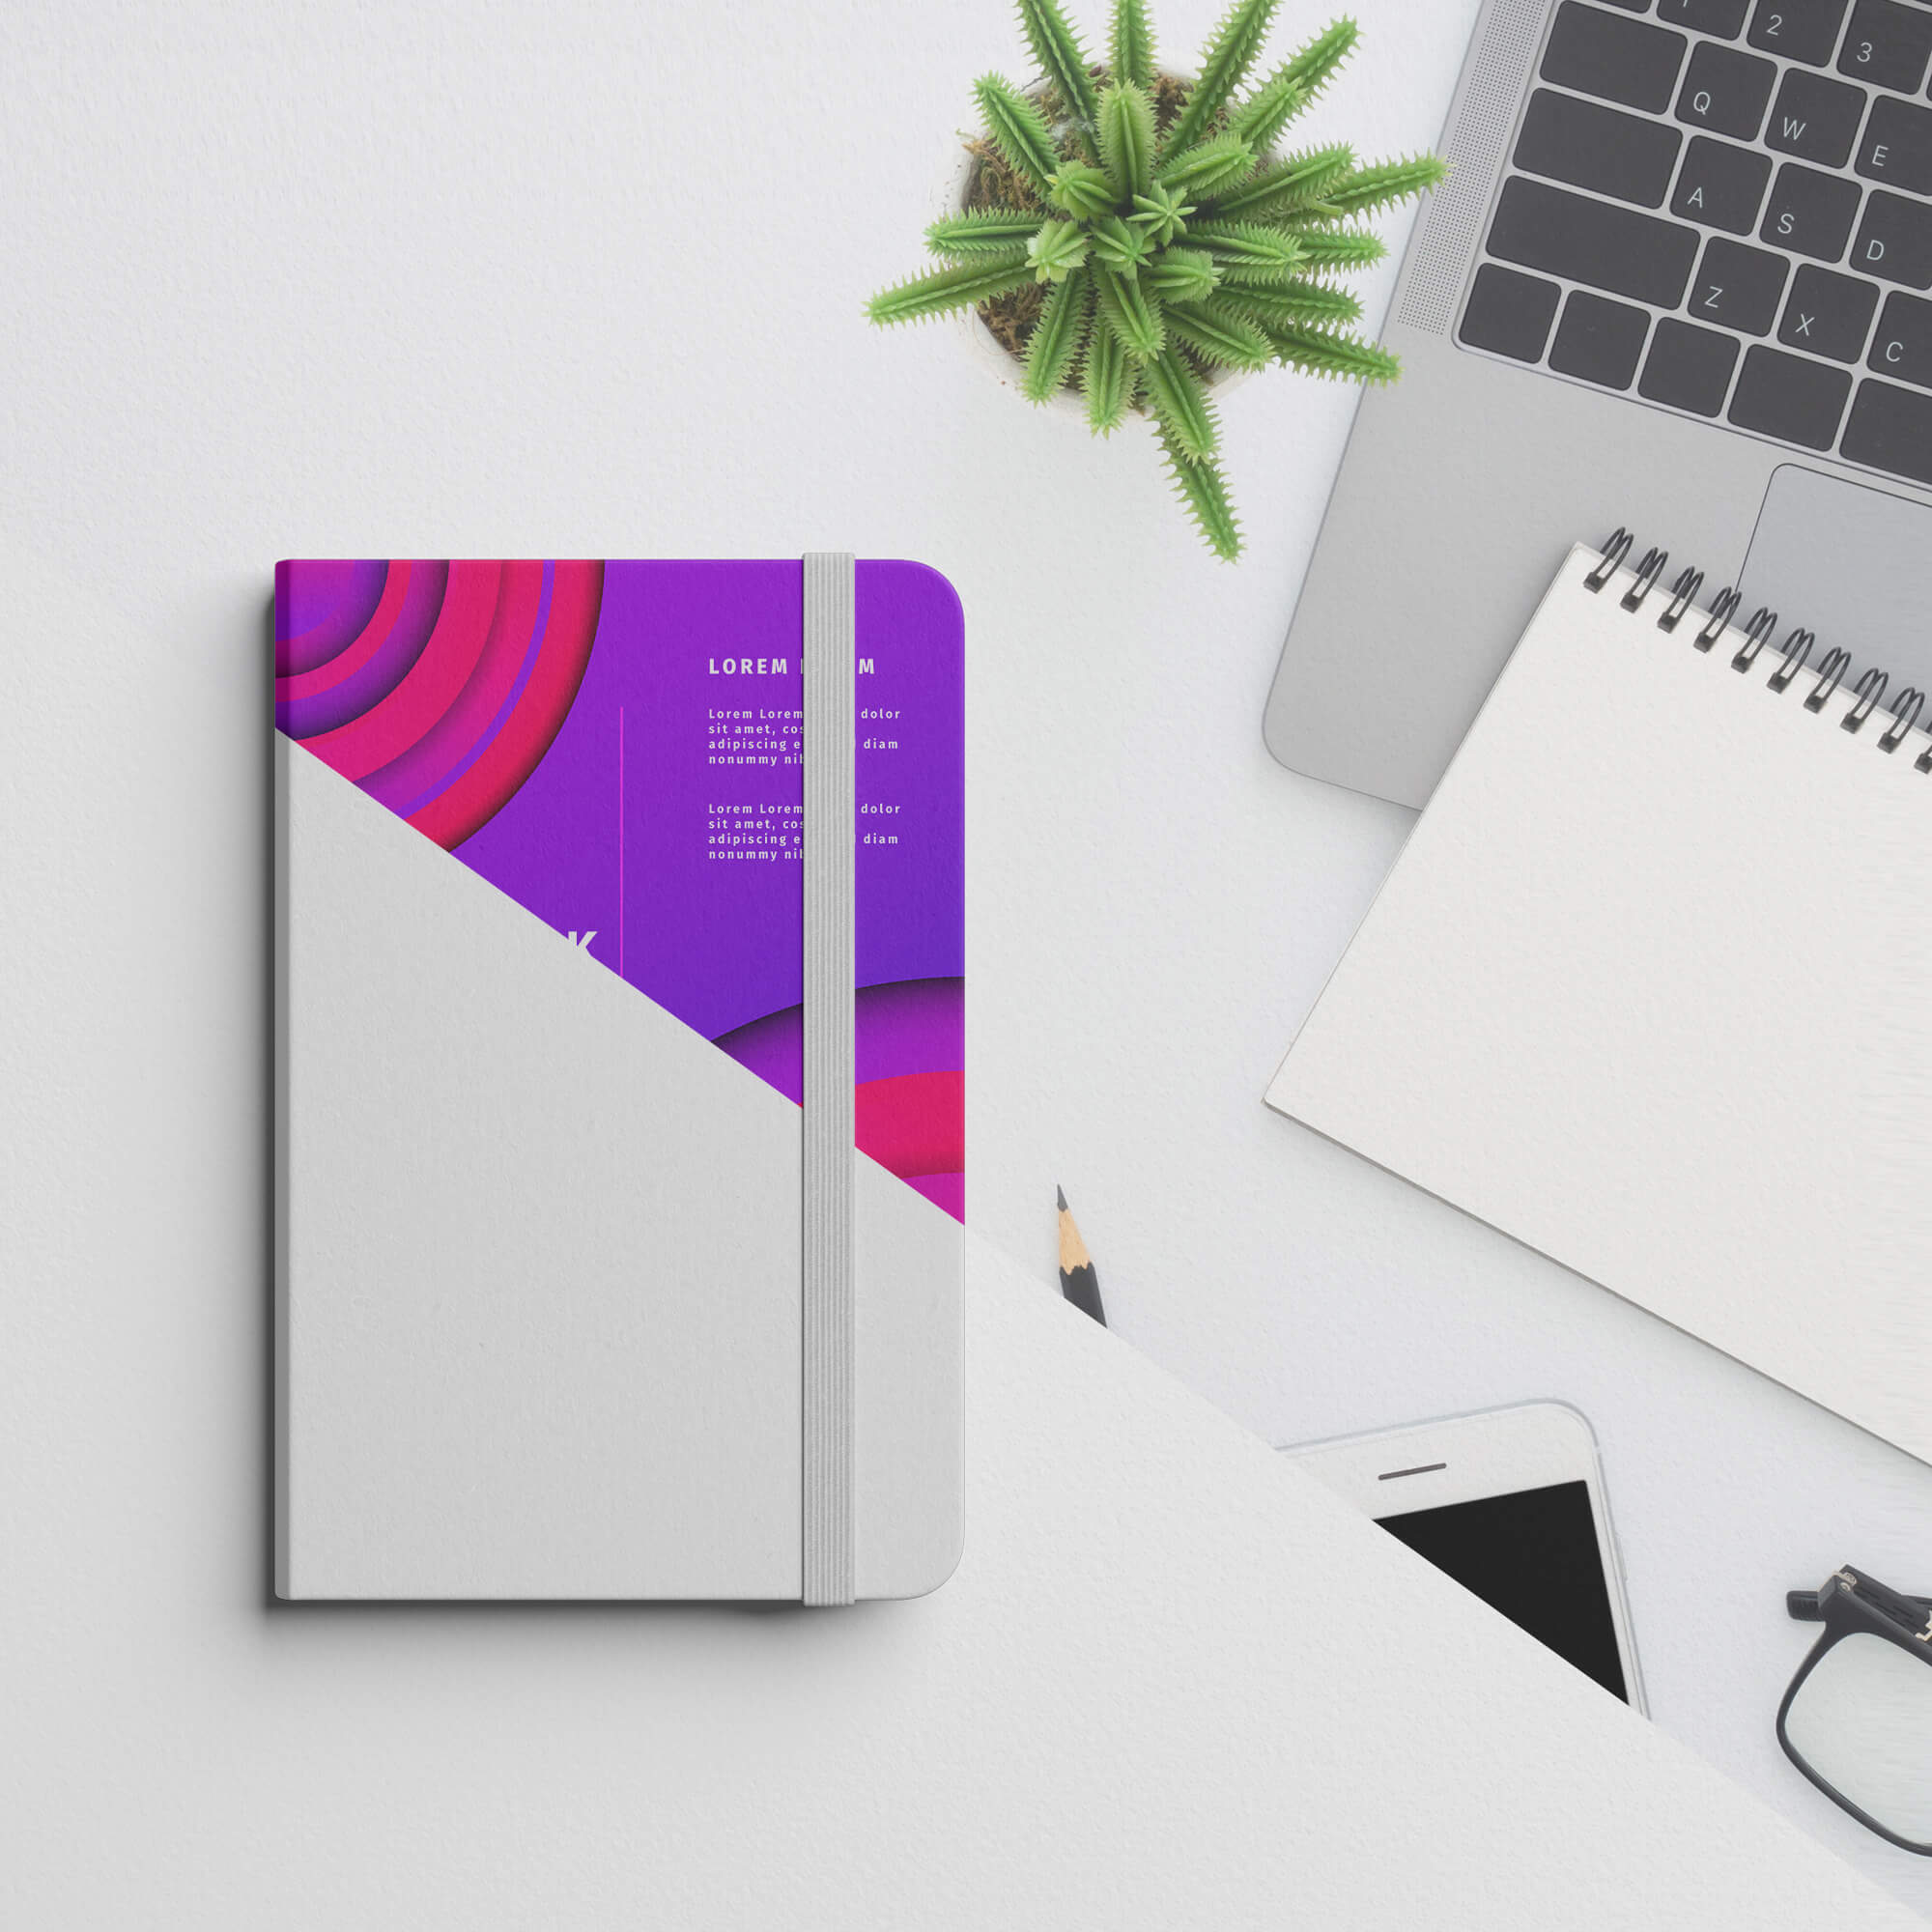 Editable Free Notebook Cover Mockup PSD Template